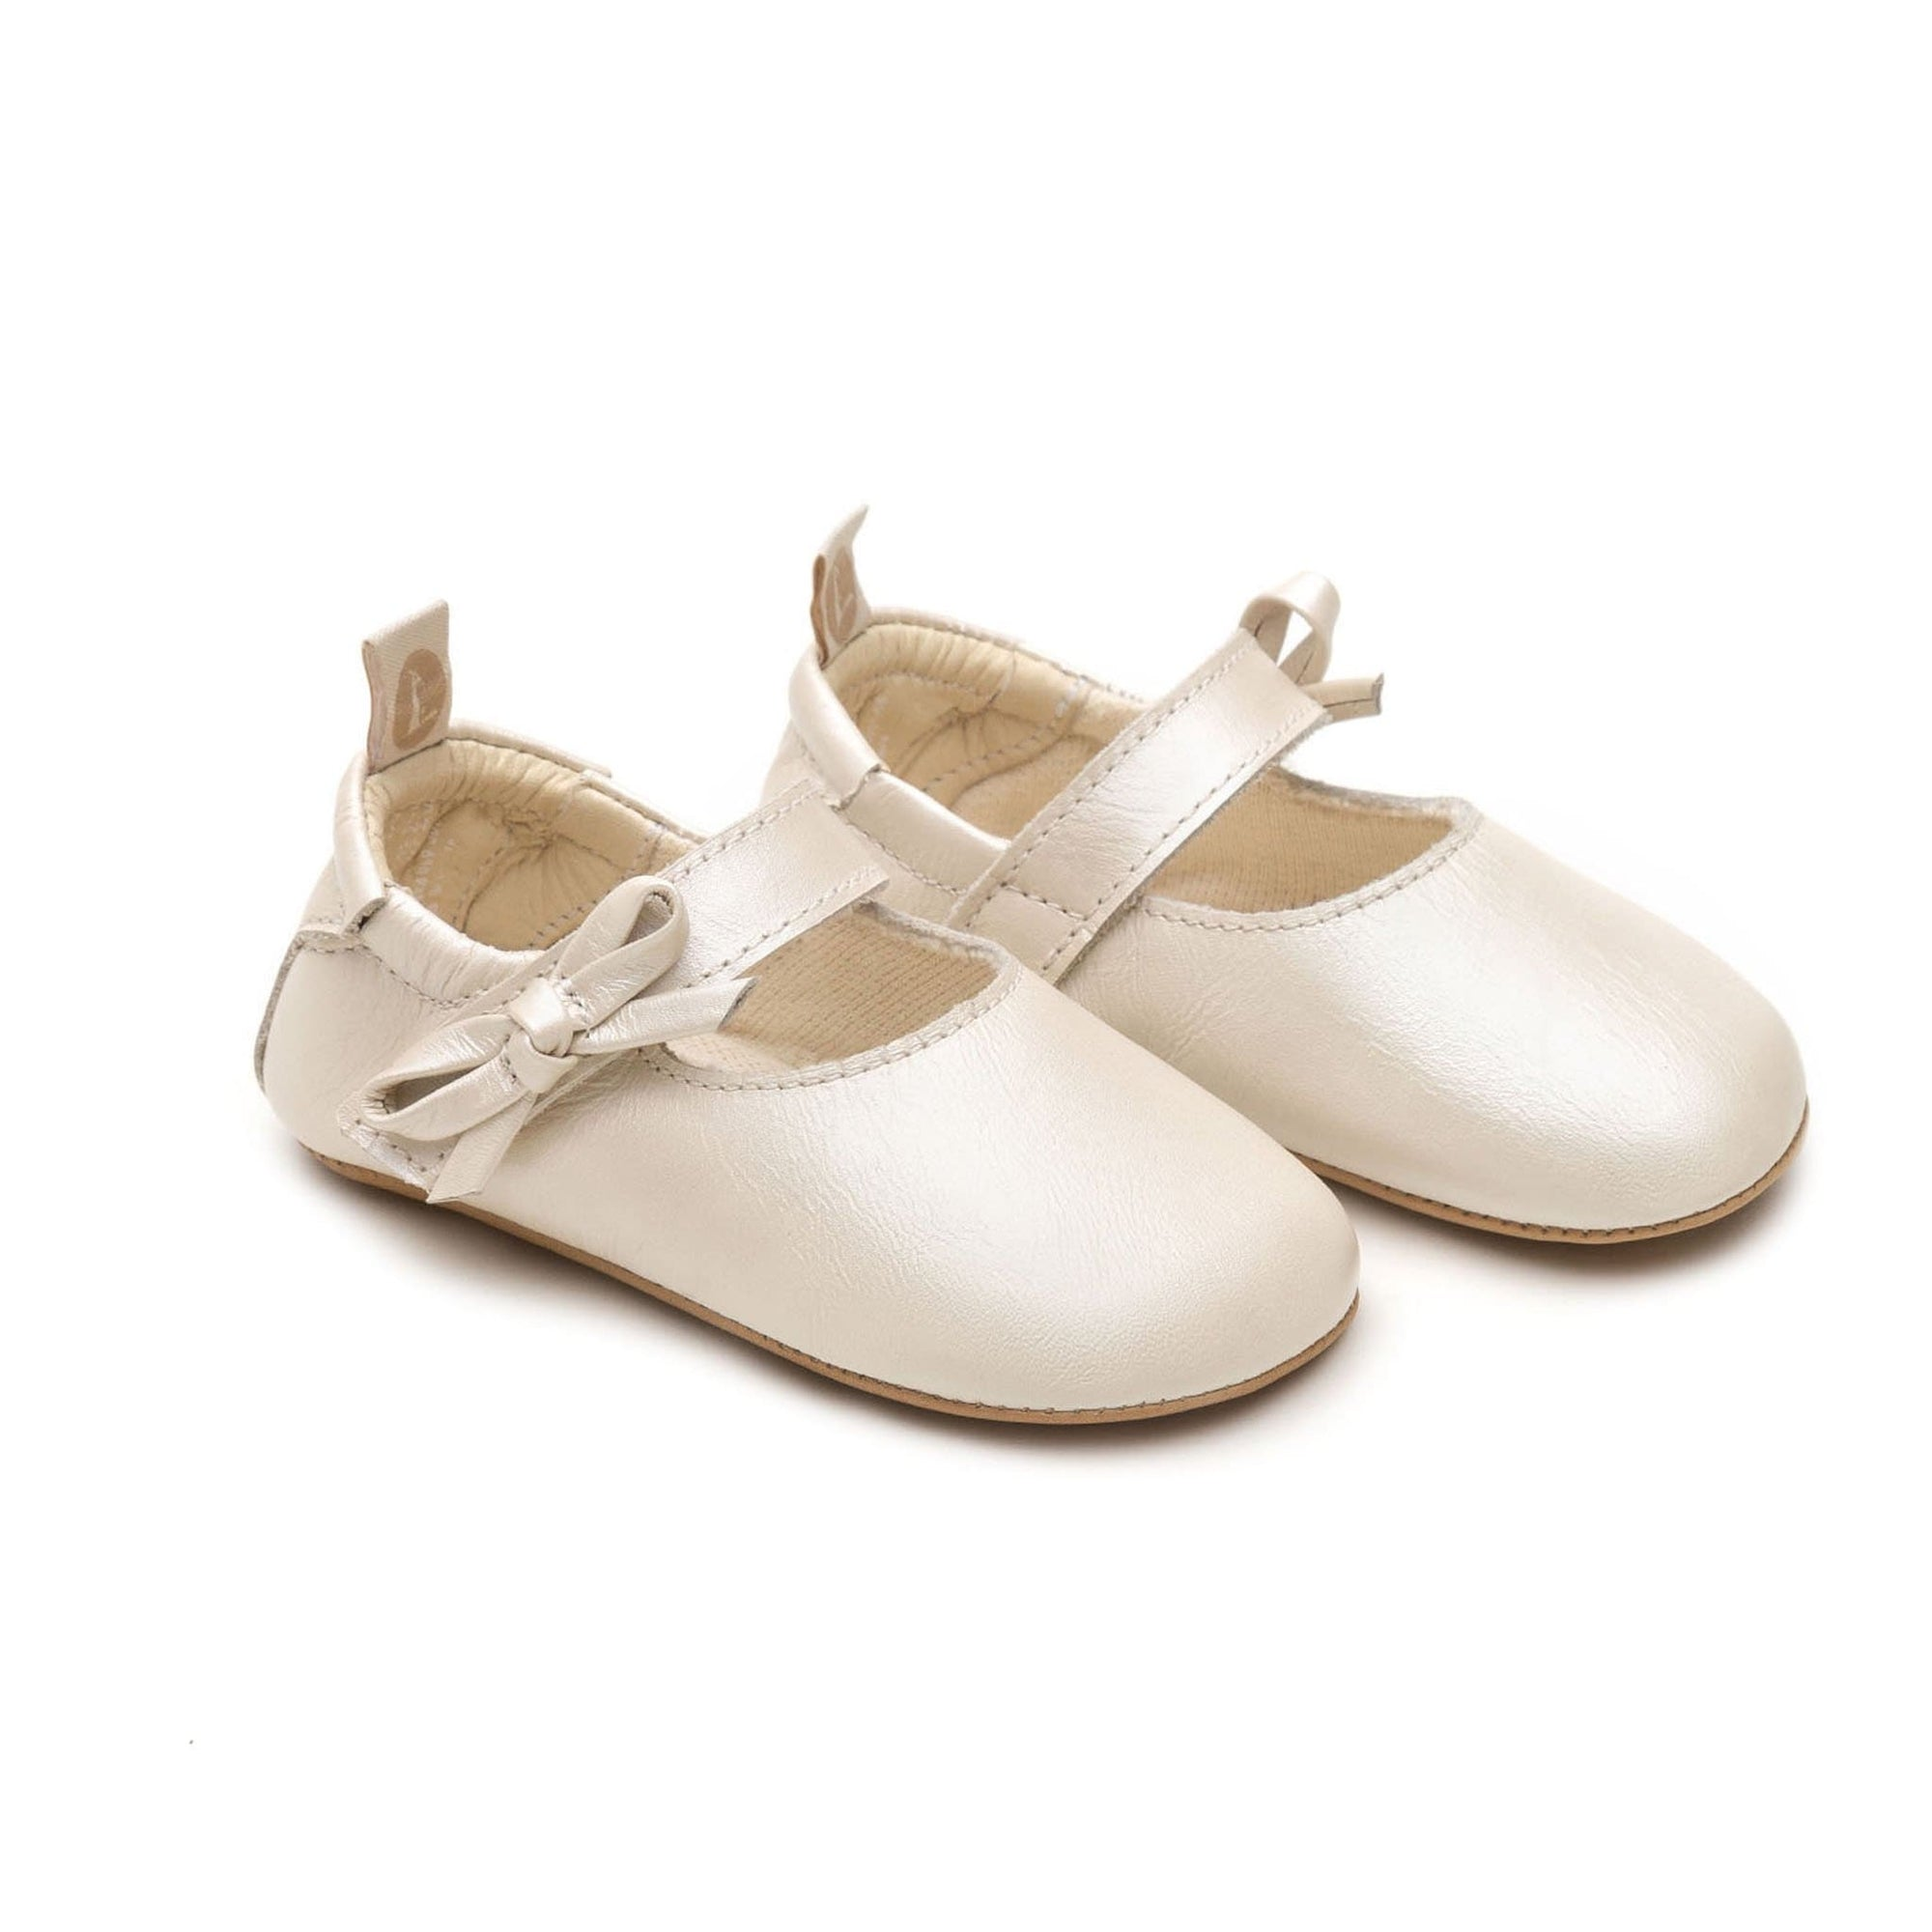 Tip Toey Joey Baby Mary Janes Gift Antique White